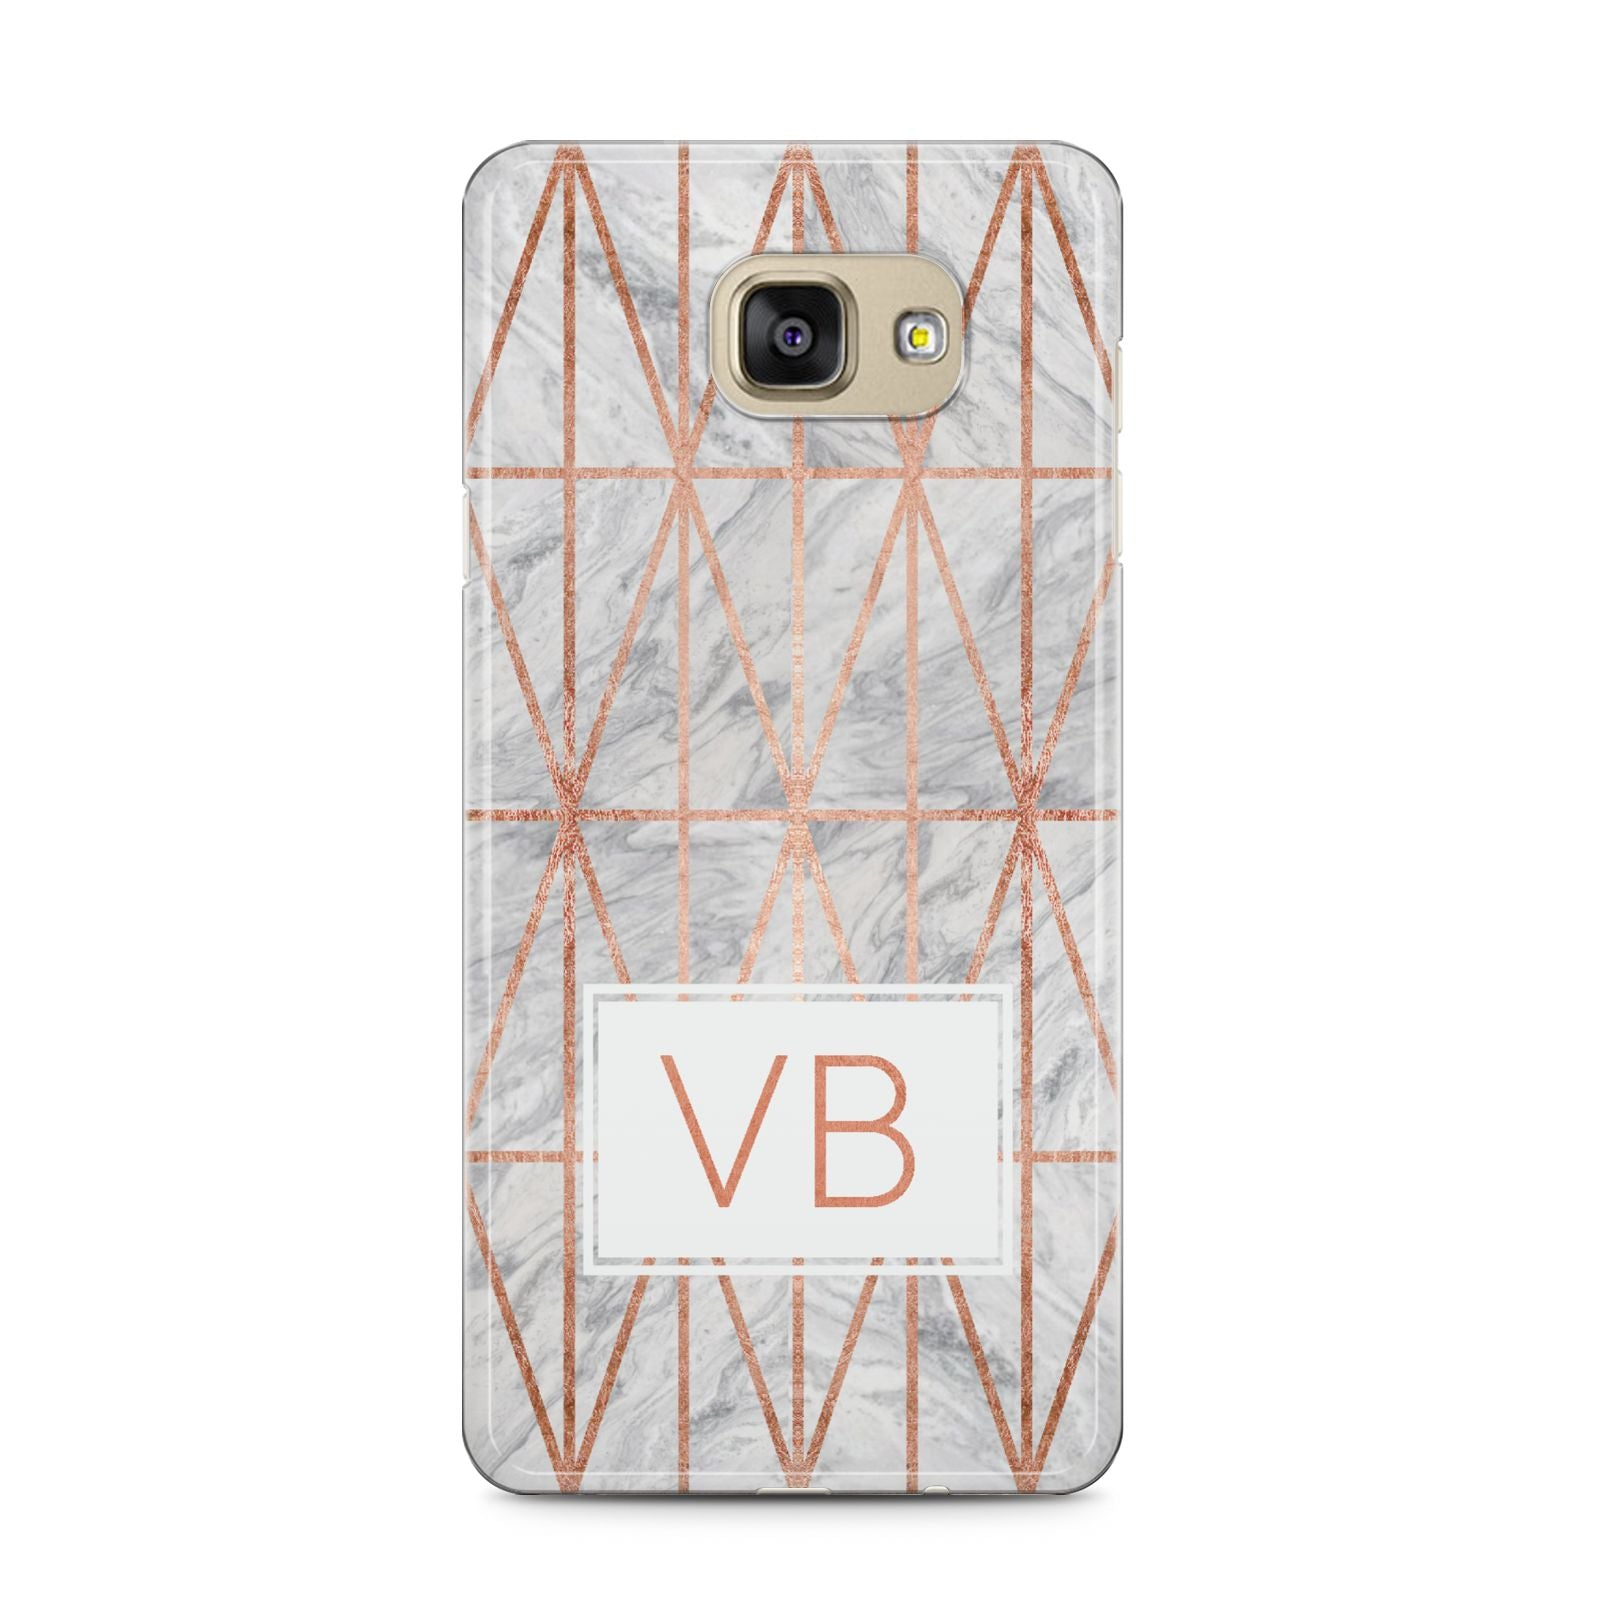 Personalised Triangular Marble Initials Samsung Galaxy A5 2016 Case on gold phone